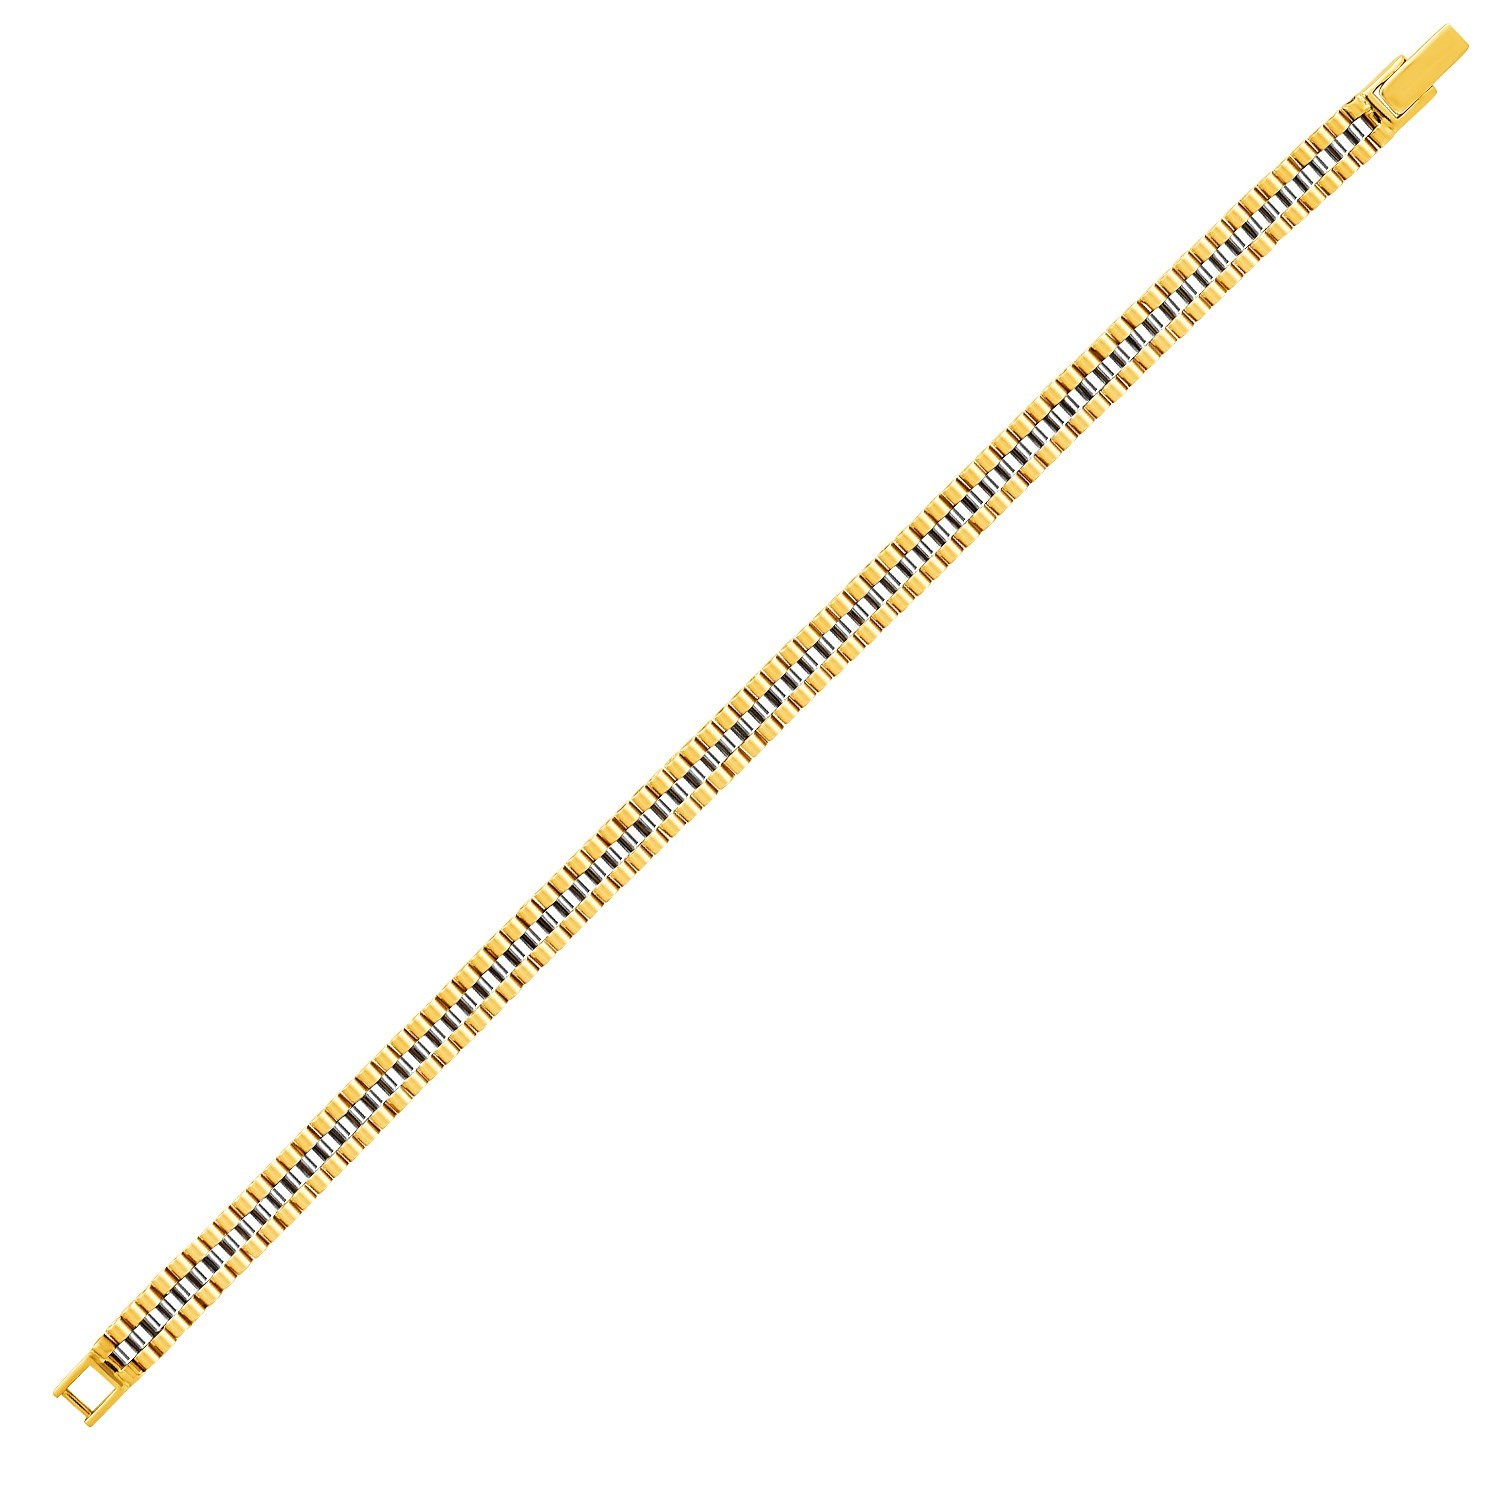 14k Two-Toned Yellow and White Gold Panther Link Bracelet Top Quality Jewelry